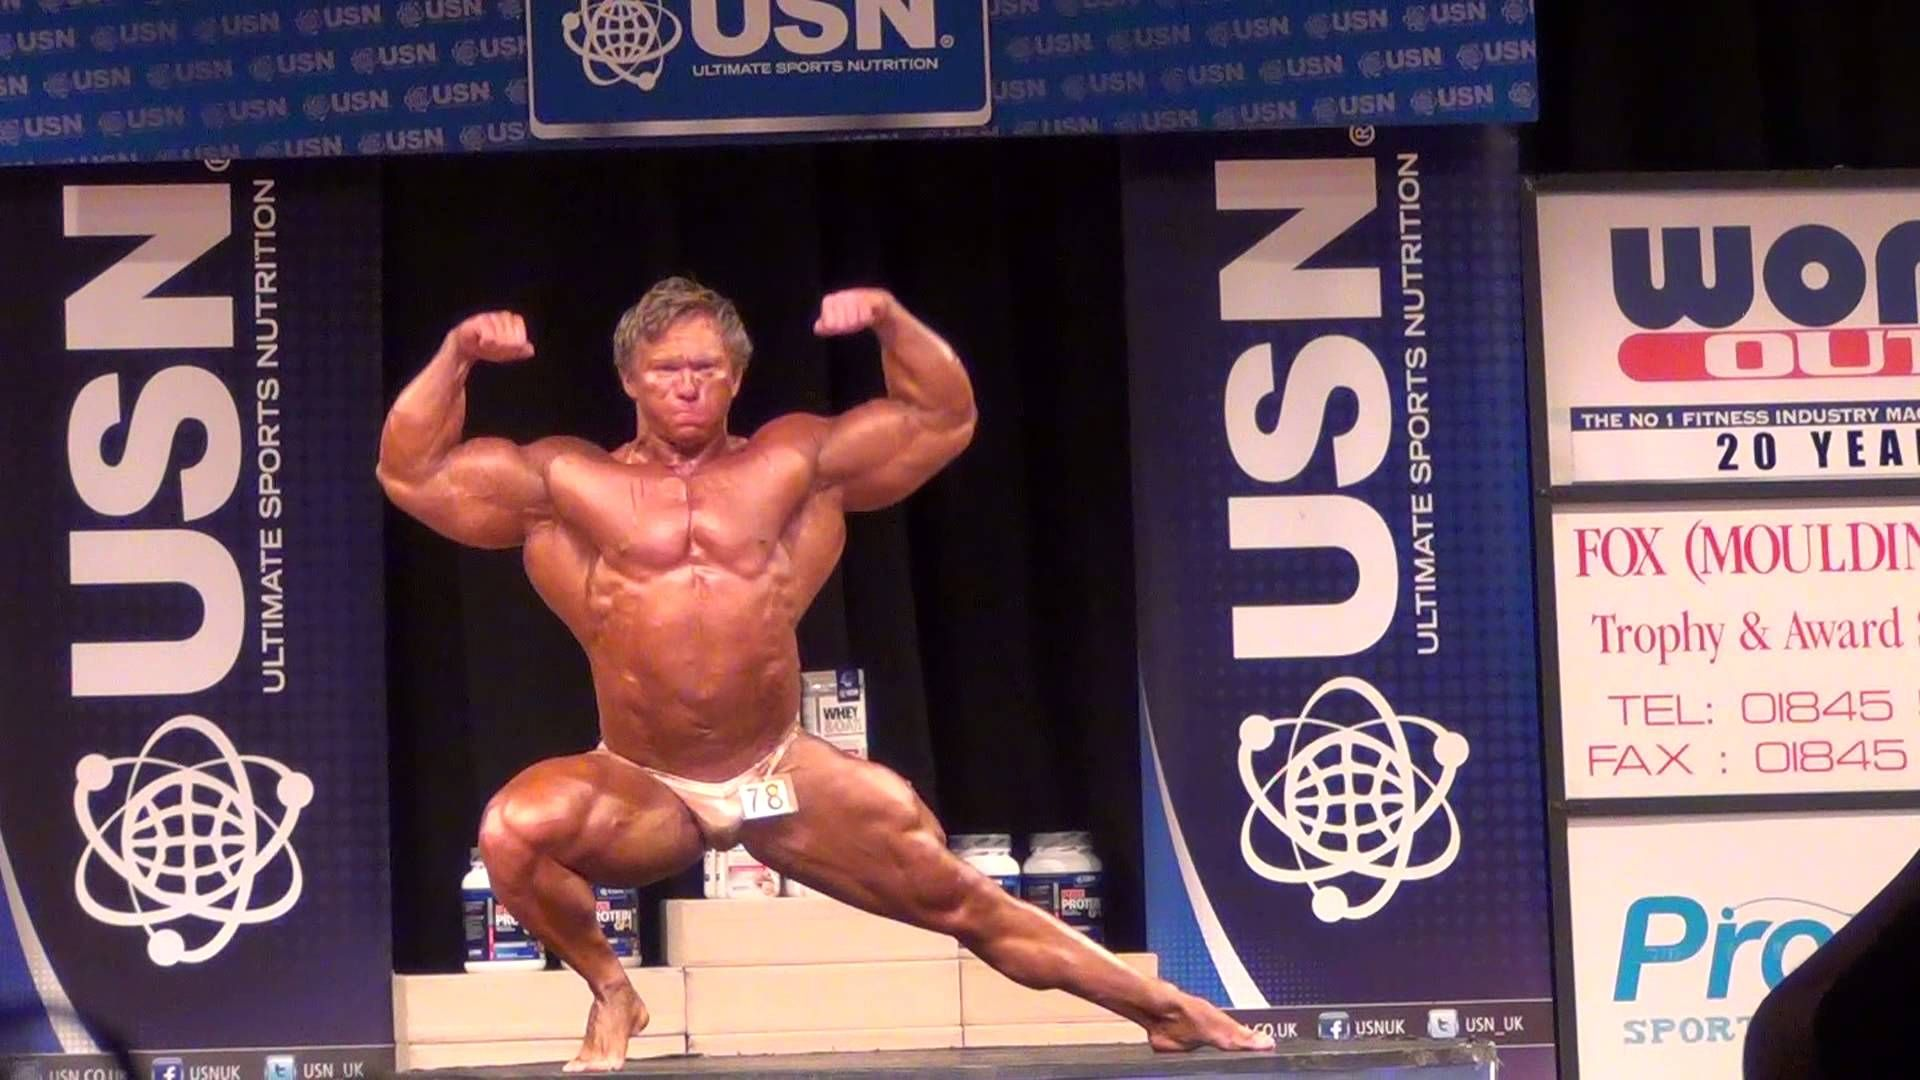 How To Be In The Top 10 With funny bodybuilding pictures